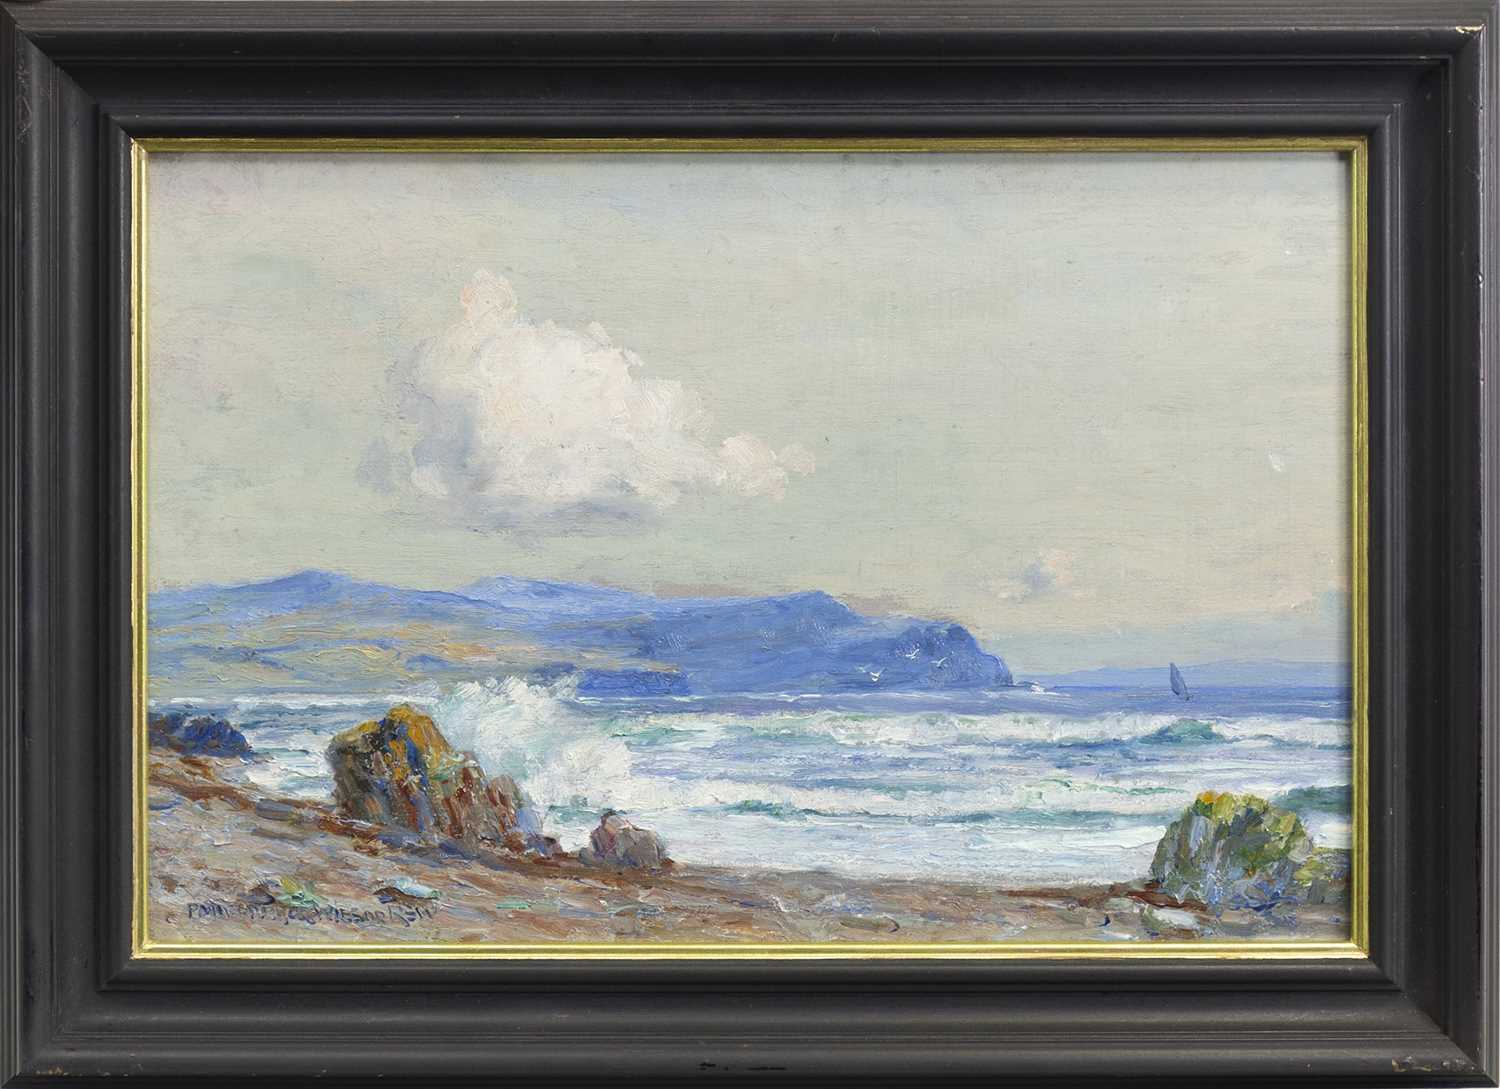 Lot 432-COASTAL SCENE, AN OIL BY P MACGREGOR WILSON